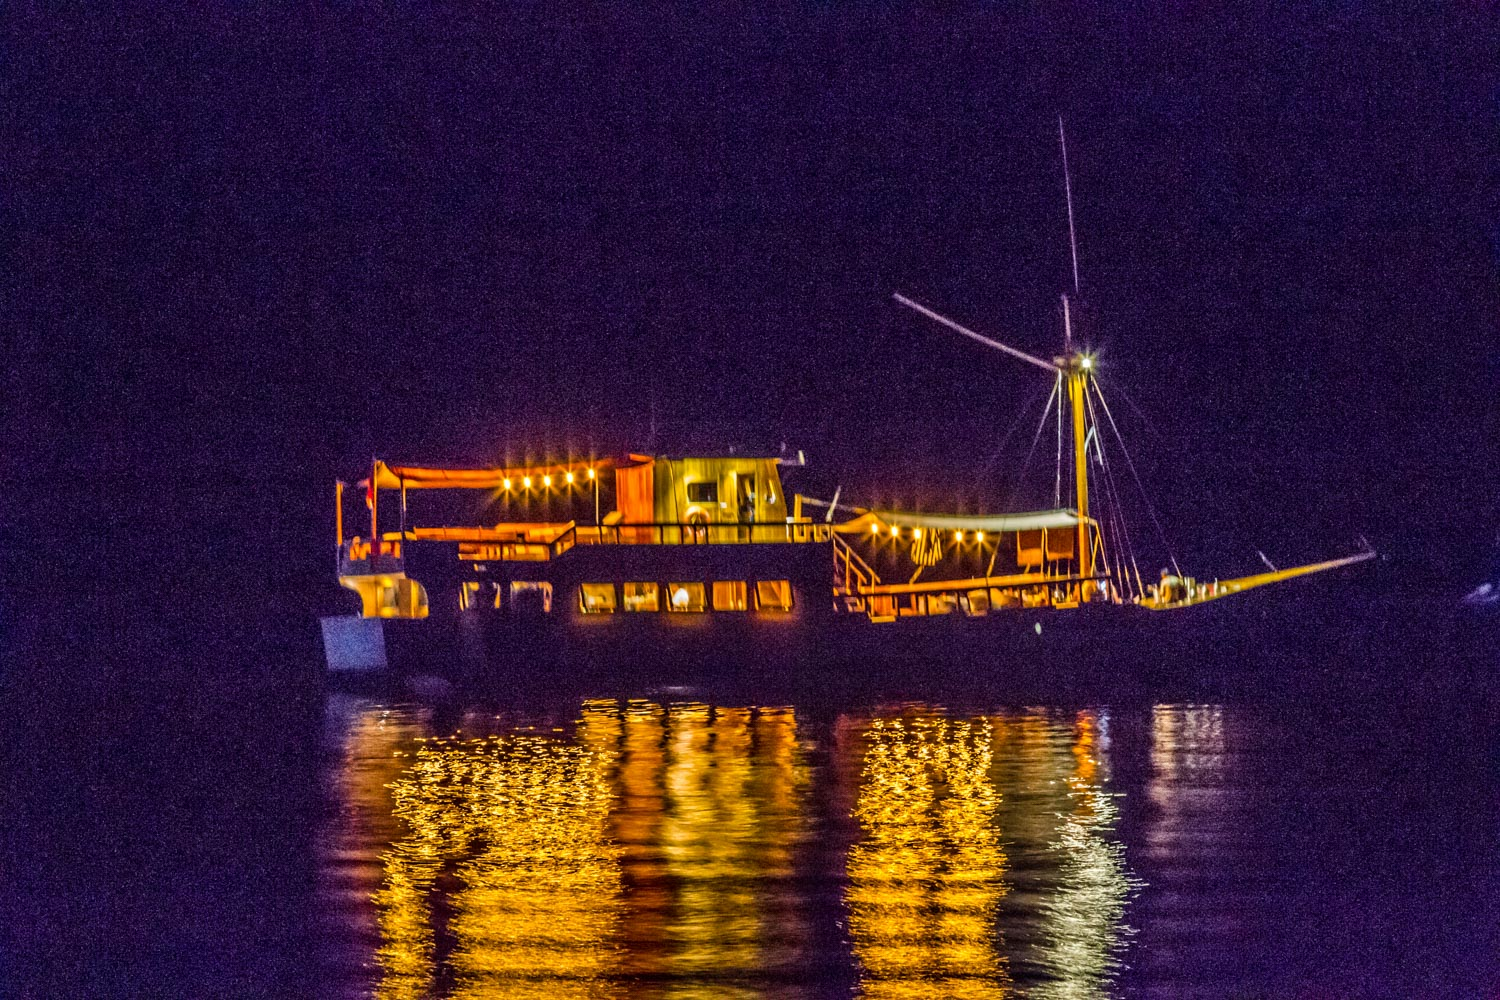 kelana_boat_cruise_by_night.JPG